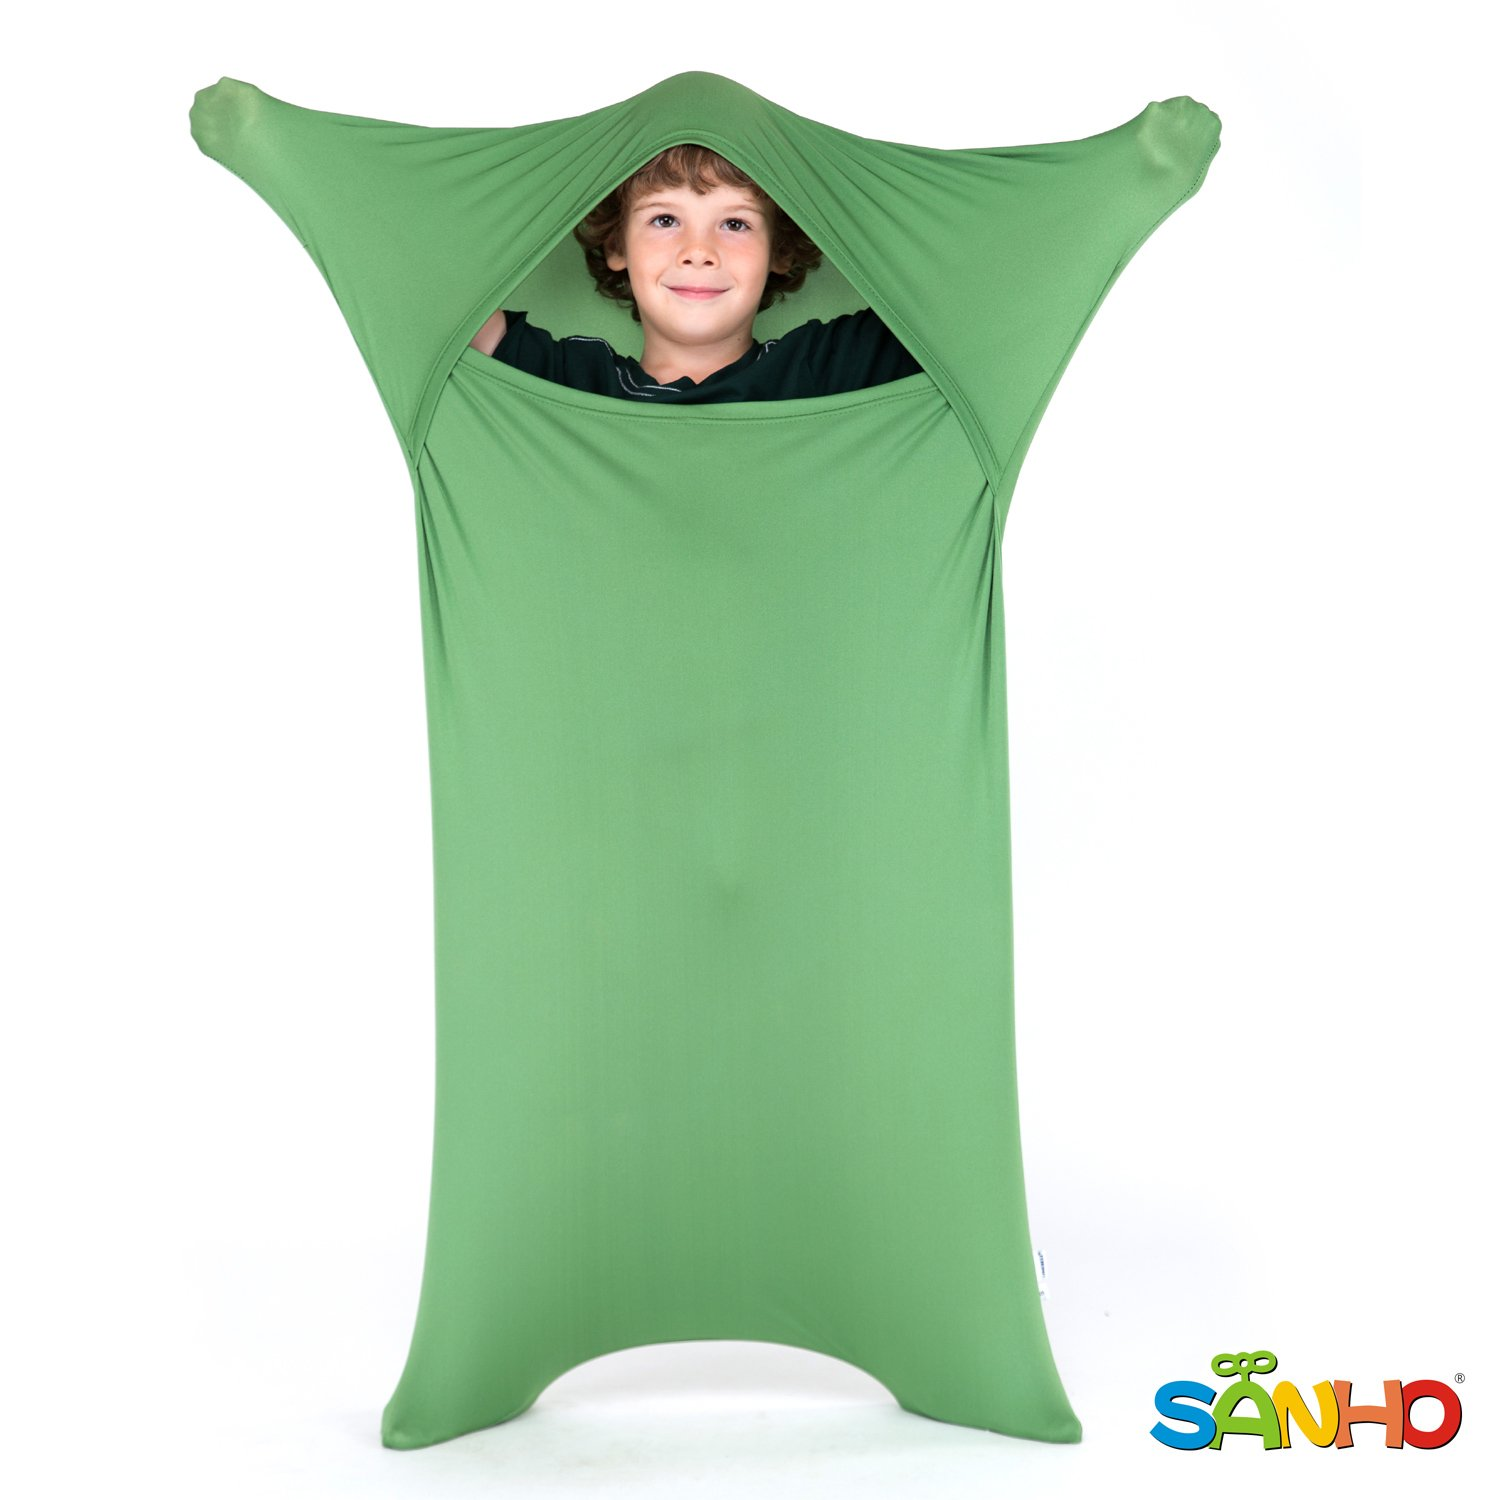 SANHO Premium Sensory Sock,Updated Version, Large, 70'' L x 28'' W, Good for Height: 63''+ Green